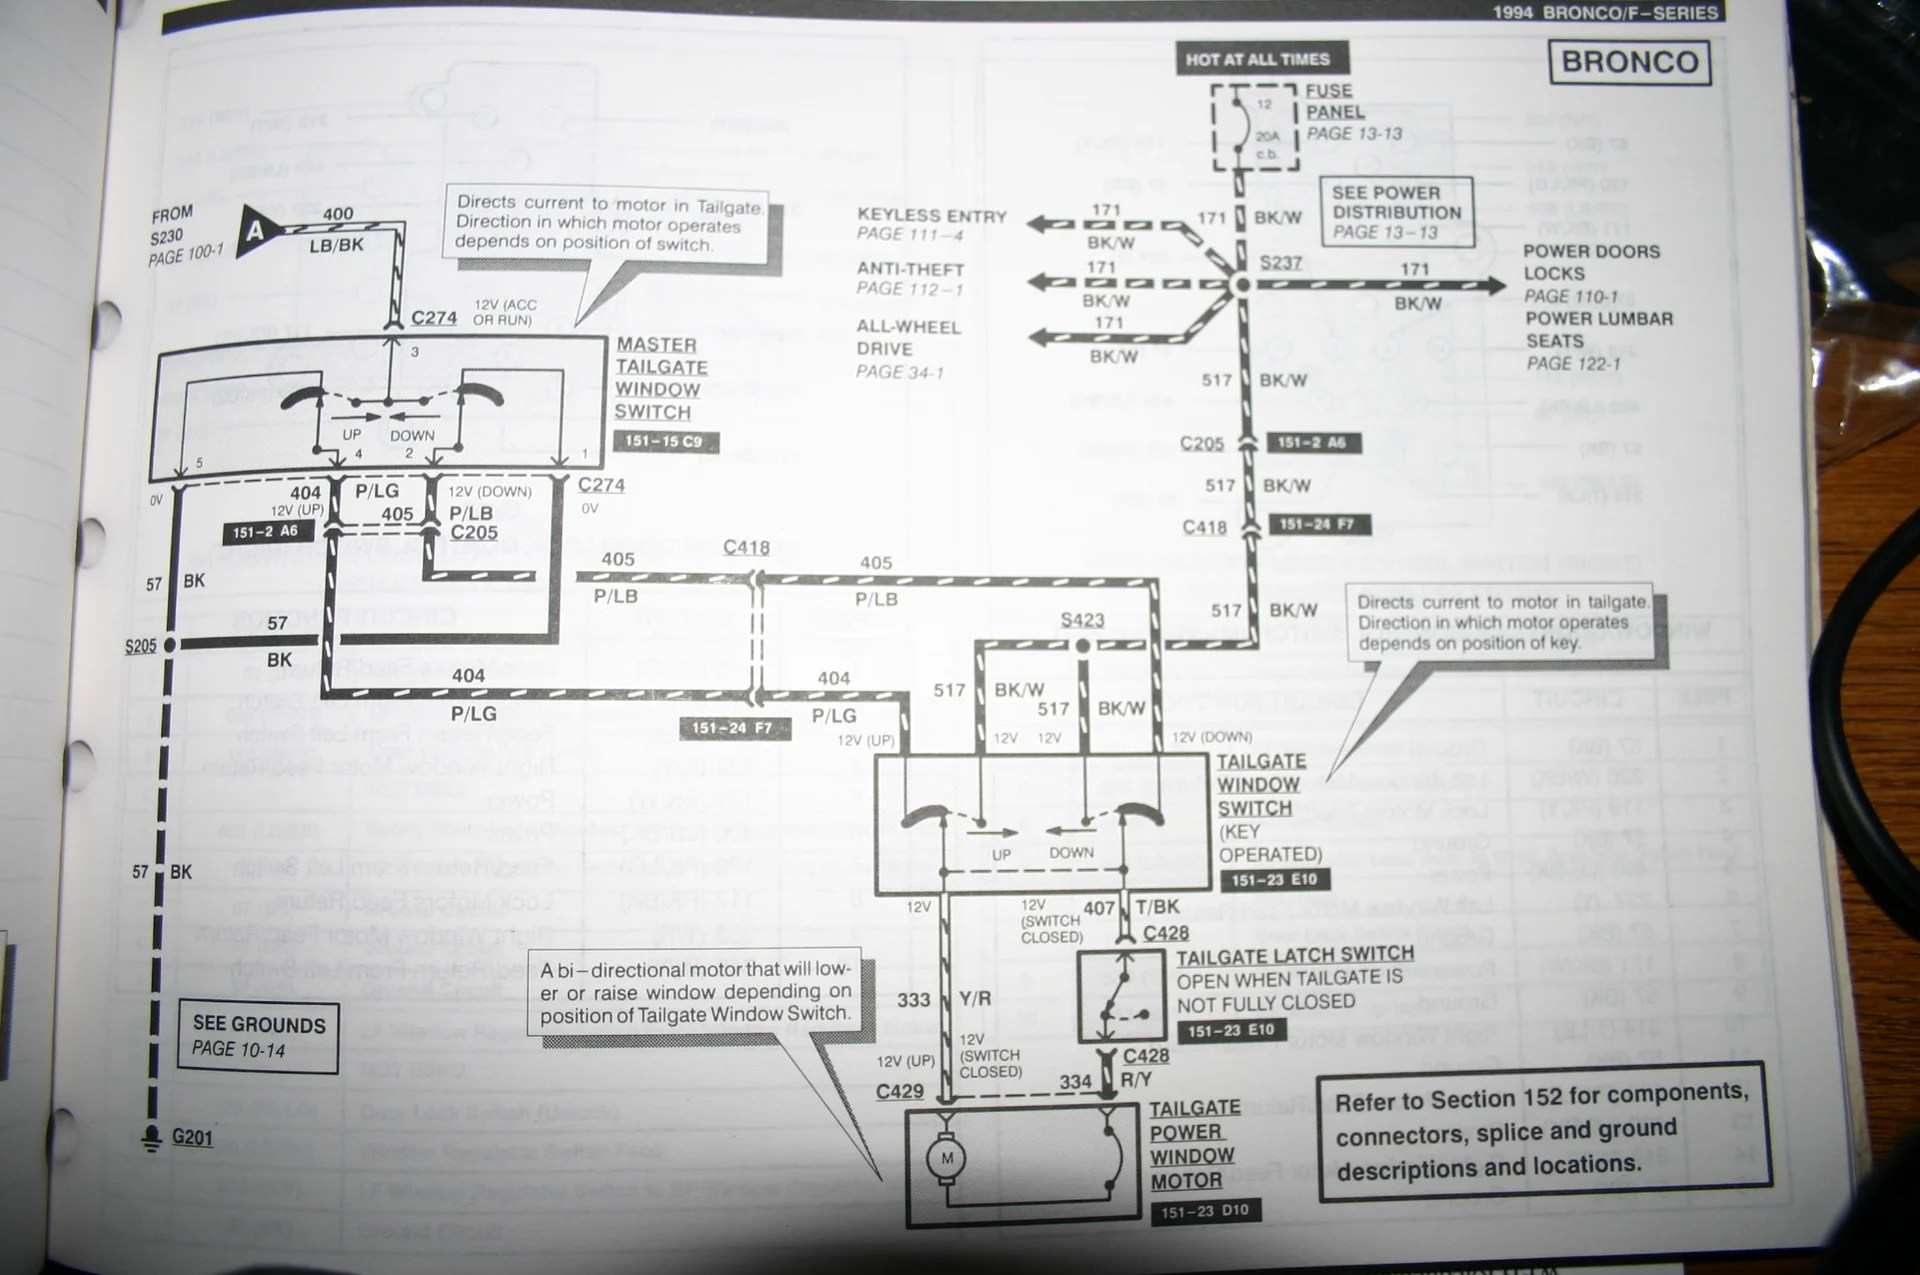 Wiring Diagrams Wiring Diagrams Autozonecom Bronco Wiring Harness 93